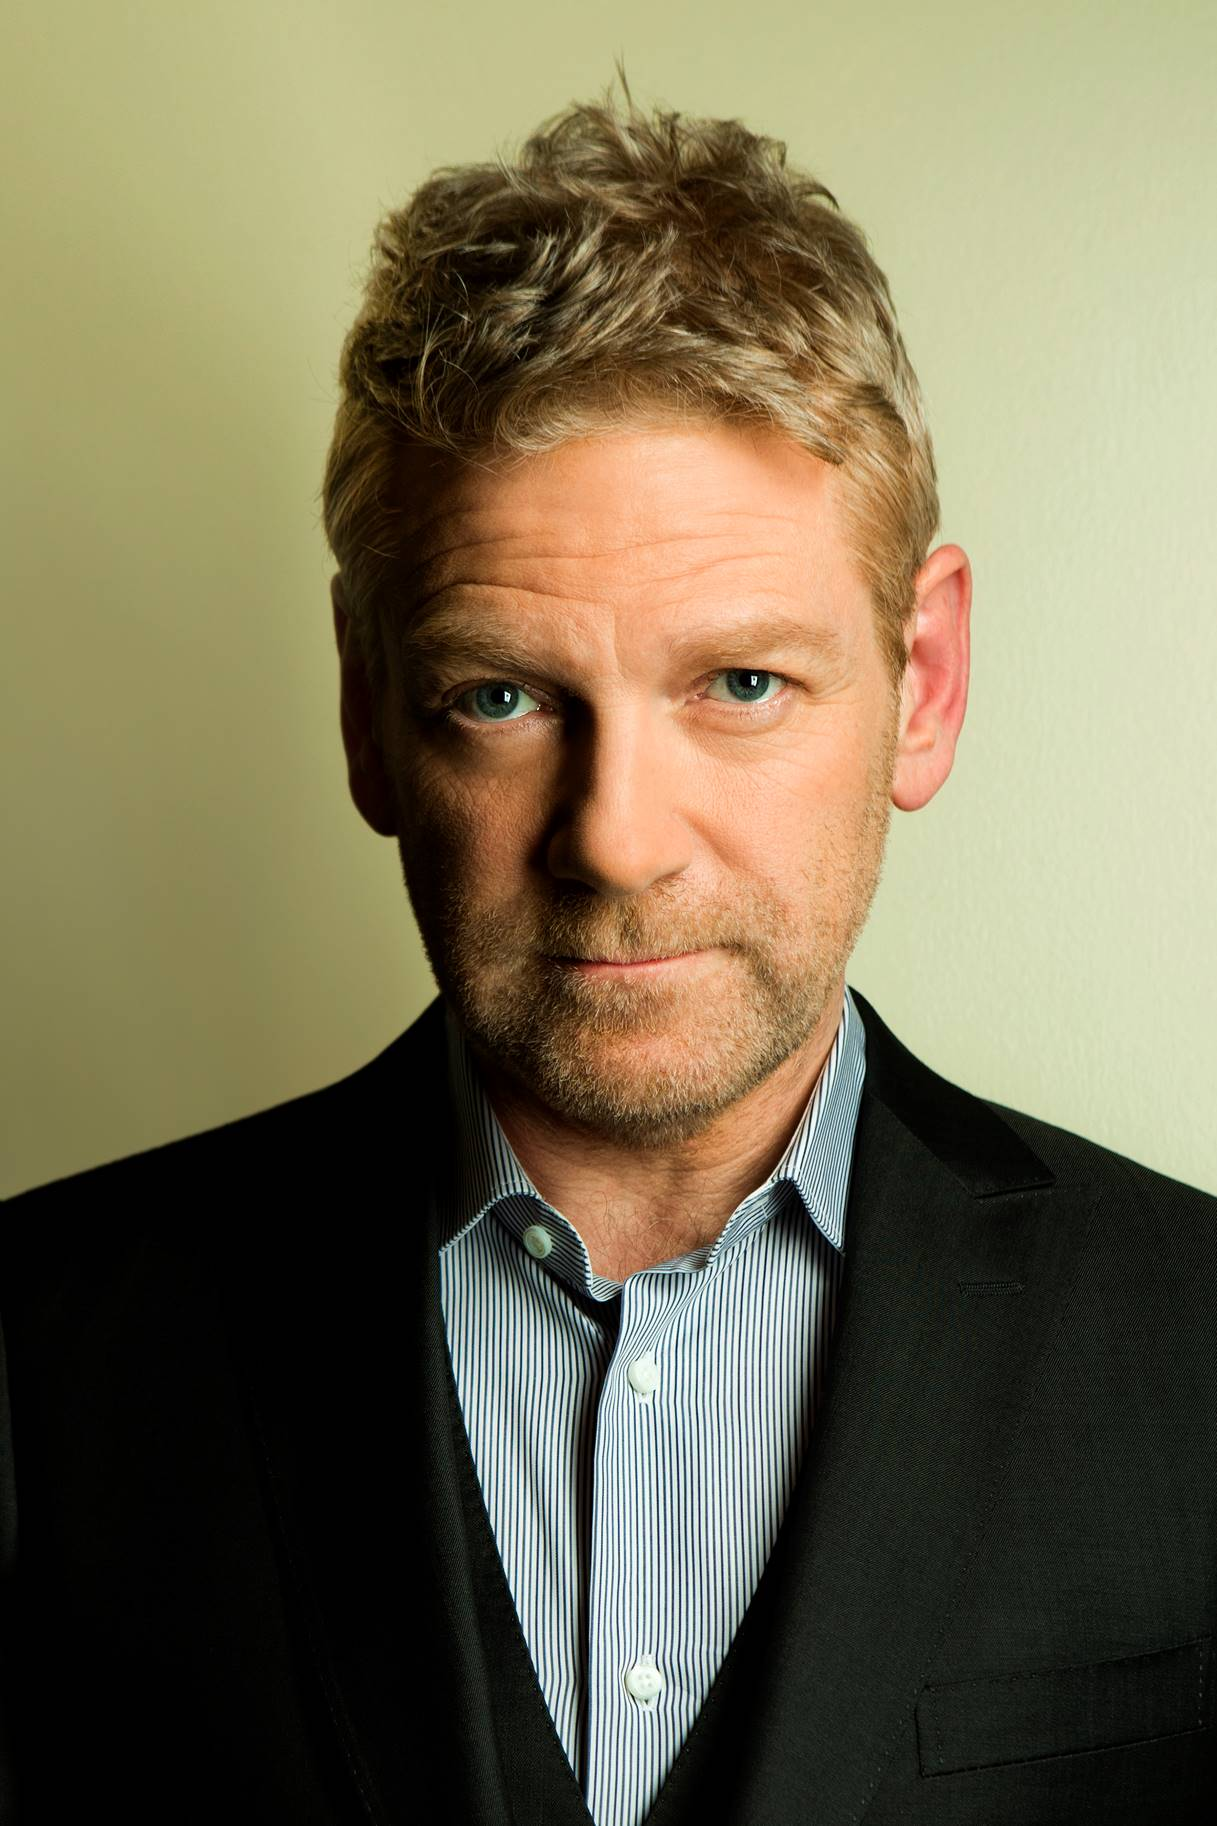 images Kenneth Branagh (born 1960)